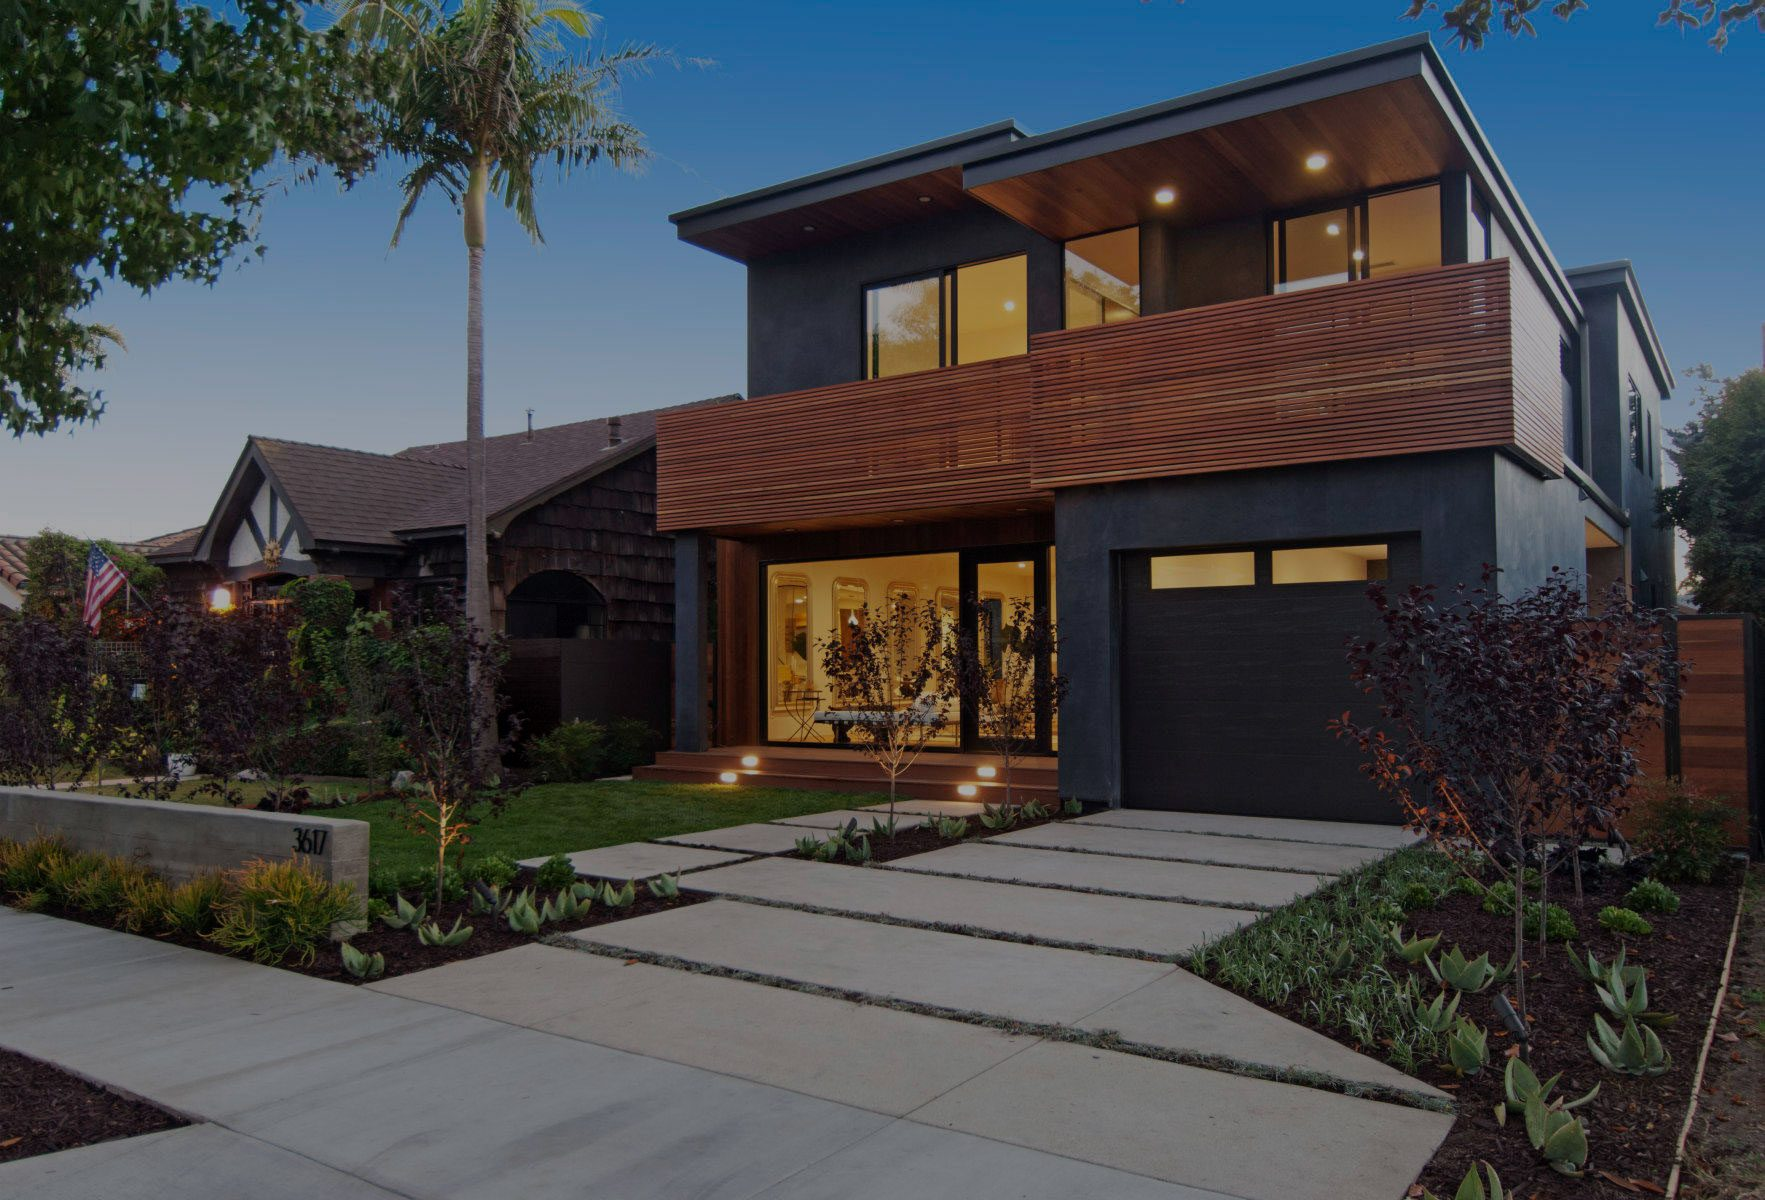 homes-for-sale-in-los-angeles-real-estate-trends-in-hollywood-2